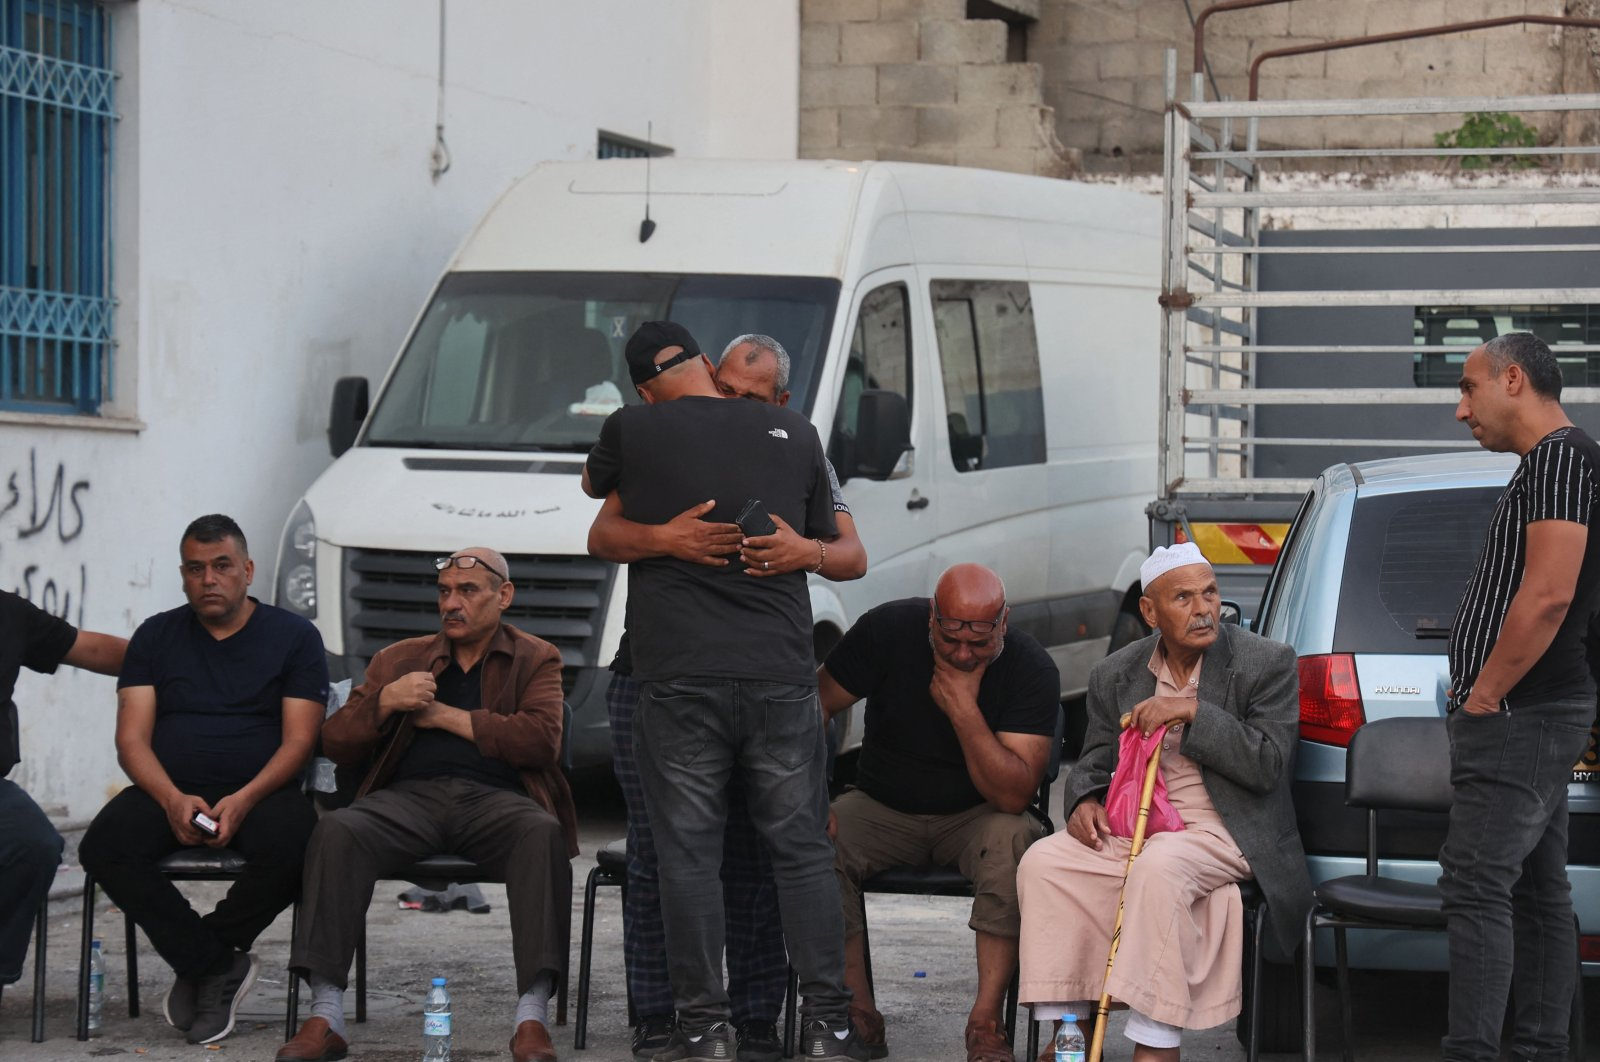 Relatives of a Palestinian killed by Israeli forces mourn outside a hospital in Jenin in the north of the occupied West Bank, Palestine, June 10, 2021. (AFP Photo)